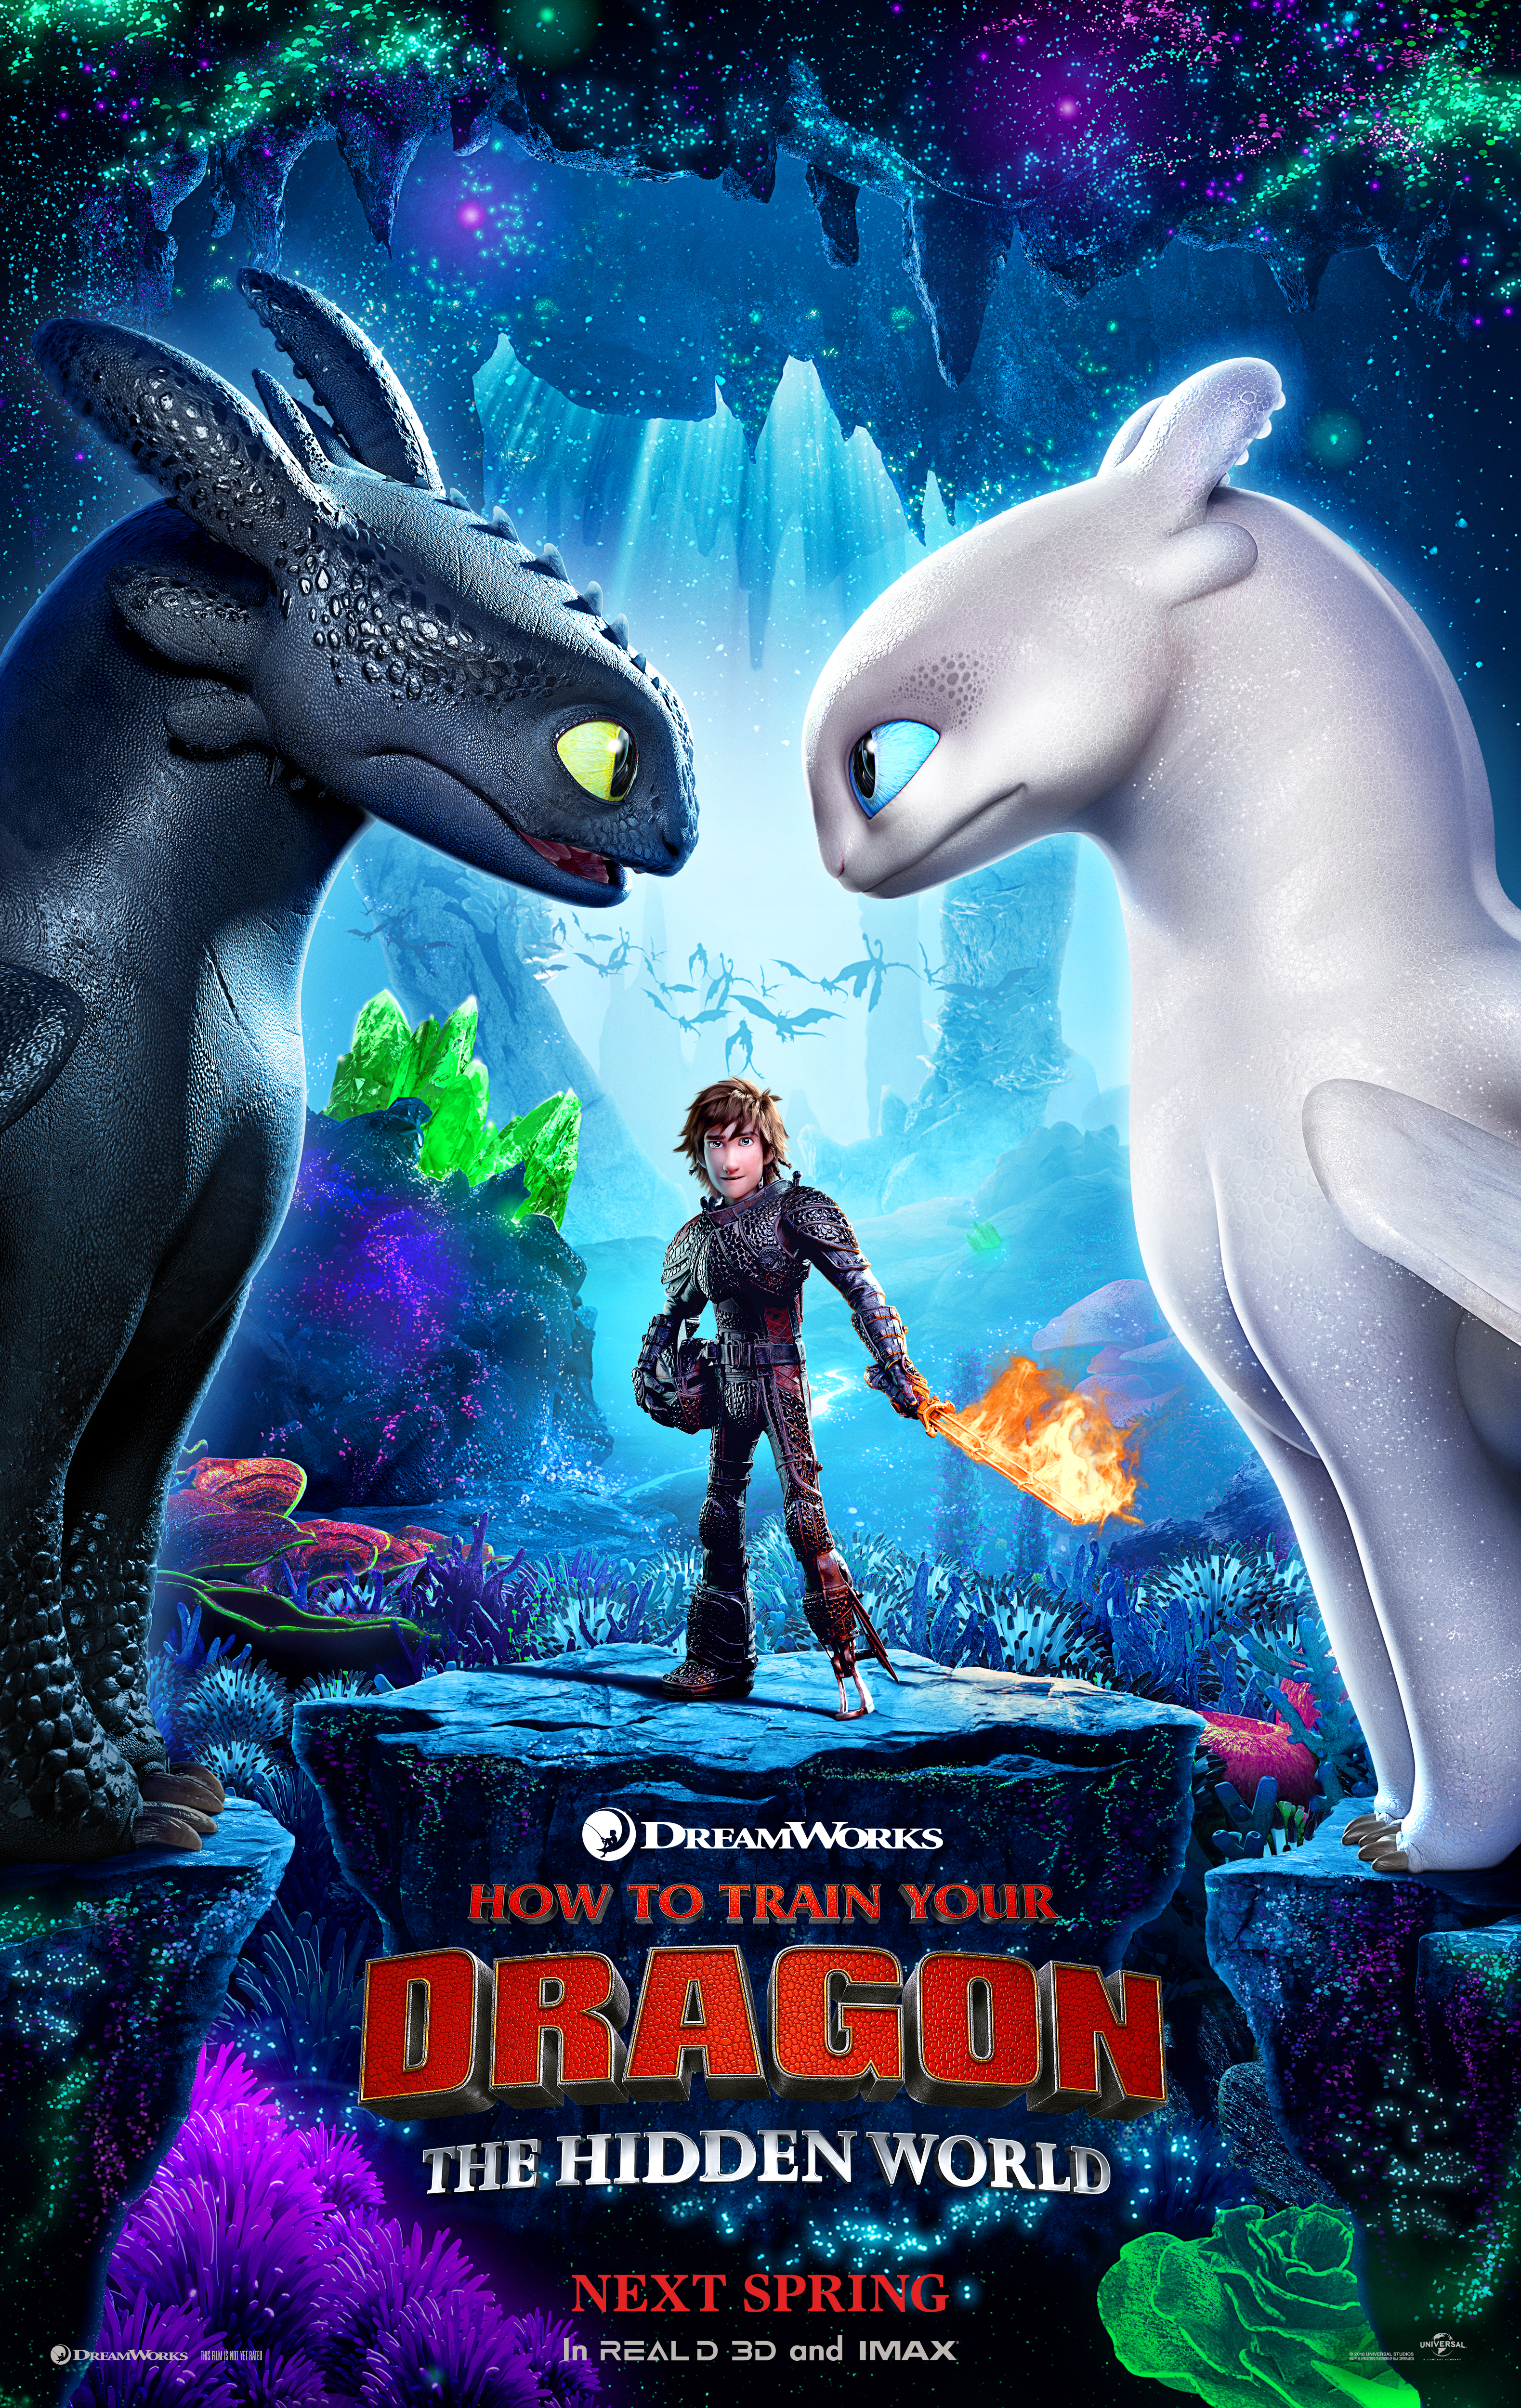 How to train your dragon the hidden world trailer nothing but geek how to train your dragon the hidden world poster universal picturesdreamworks animation movies news trailers ccuart Image collections